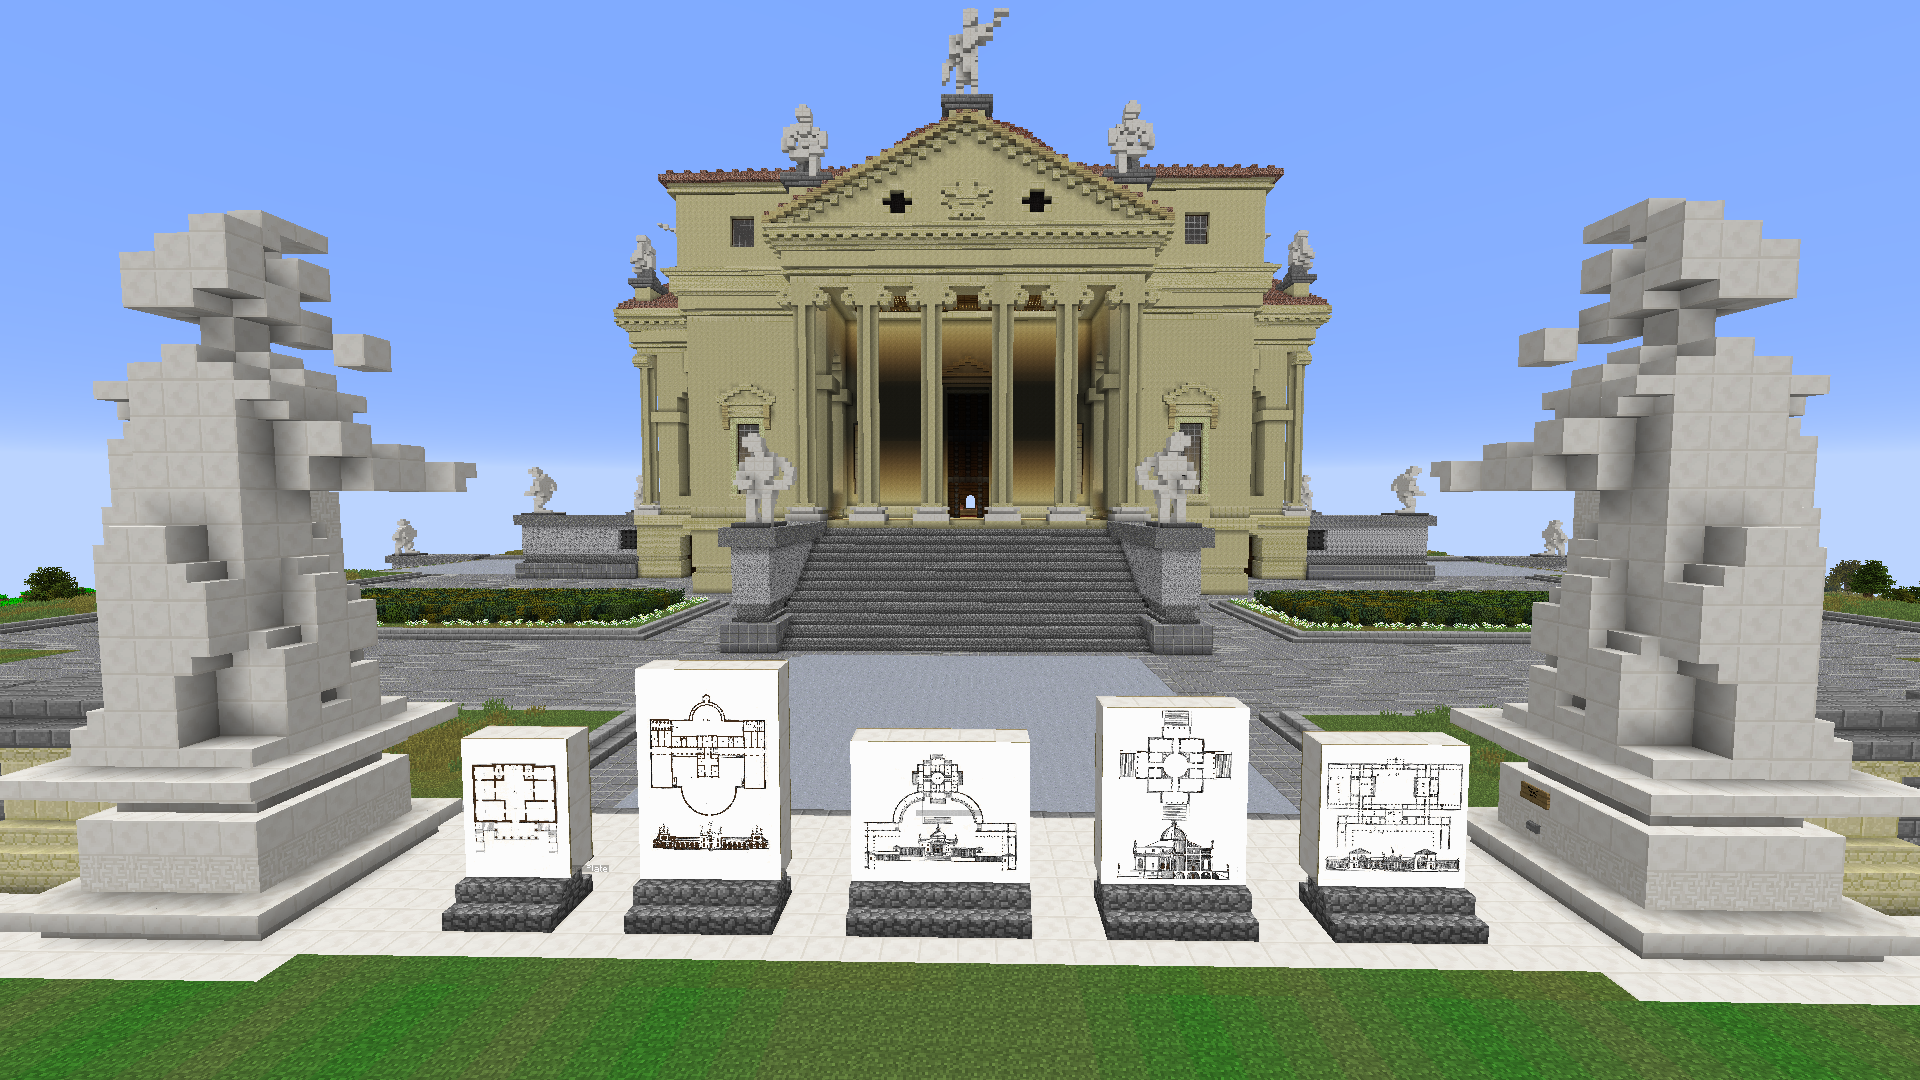 ARCHITECTURAL MINECRAFT - THE 'PALLADIAN TOOL